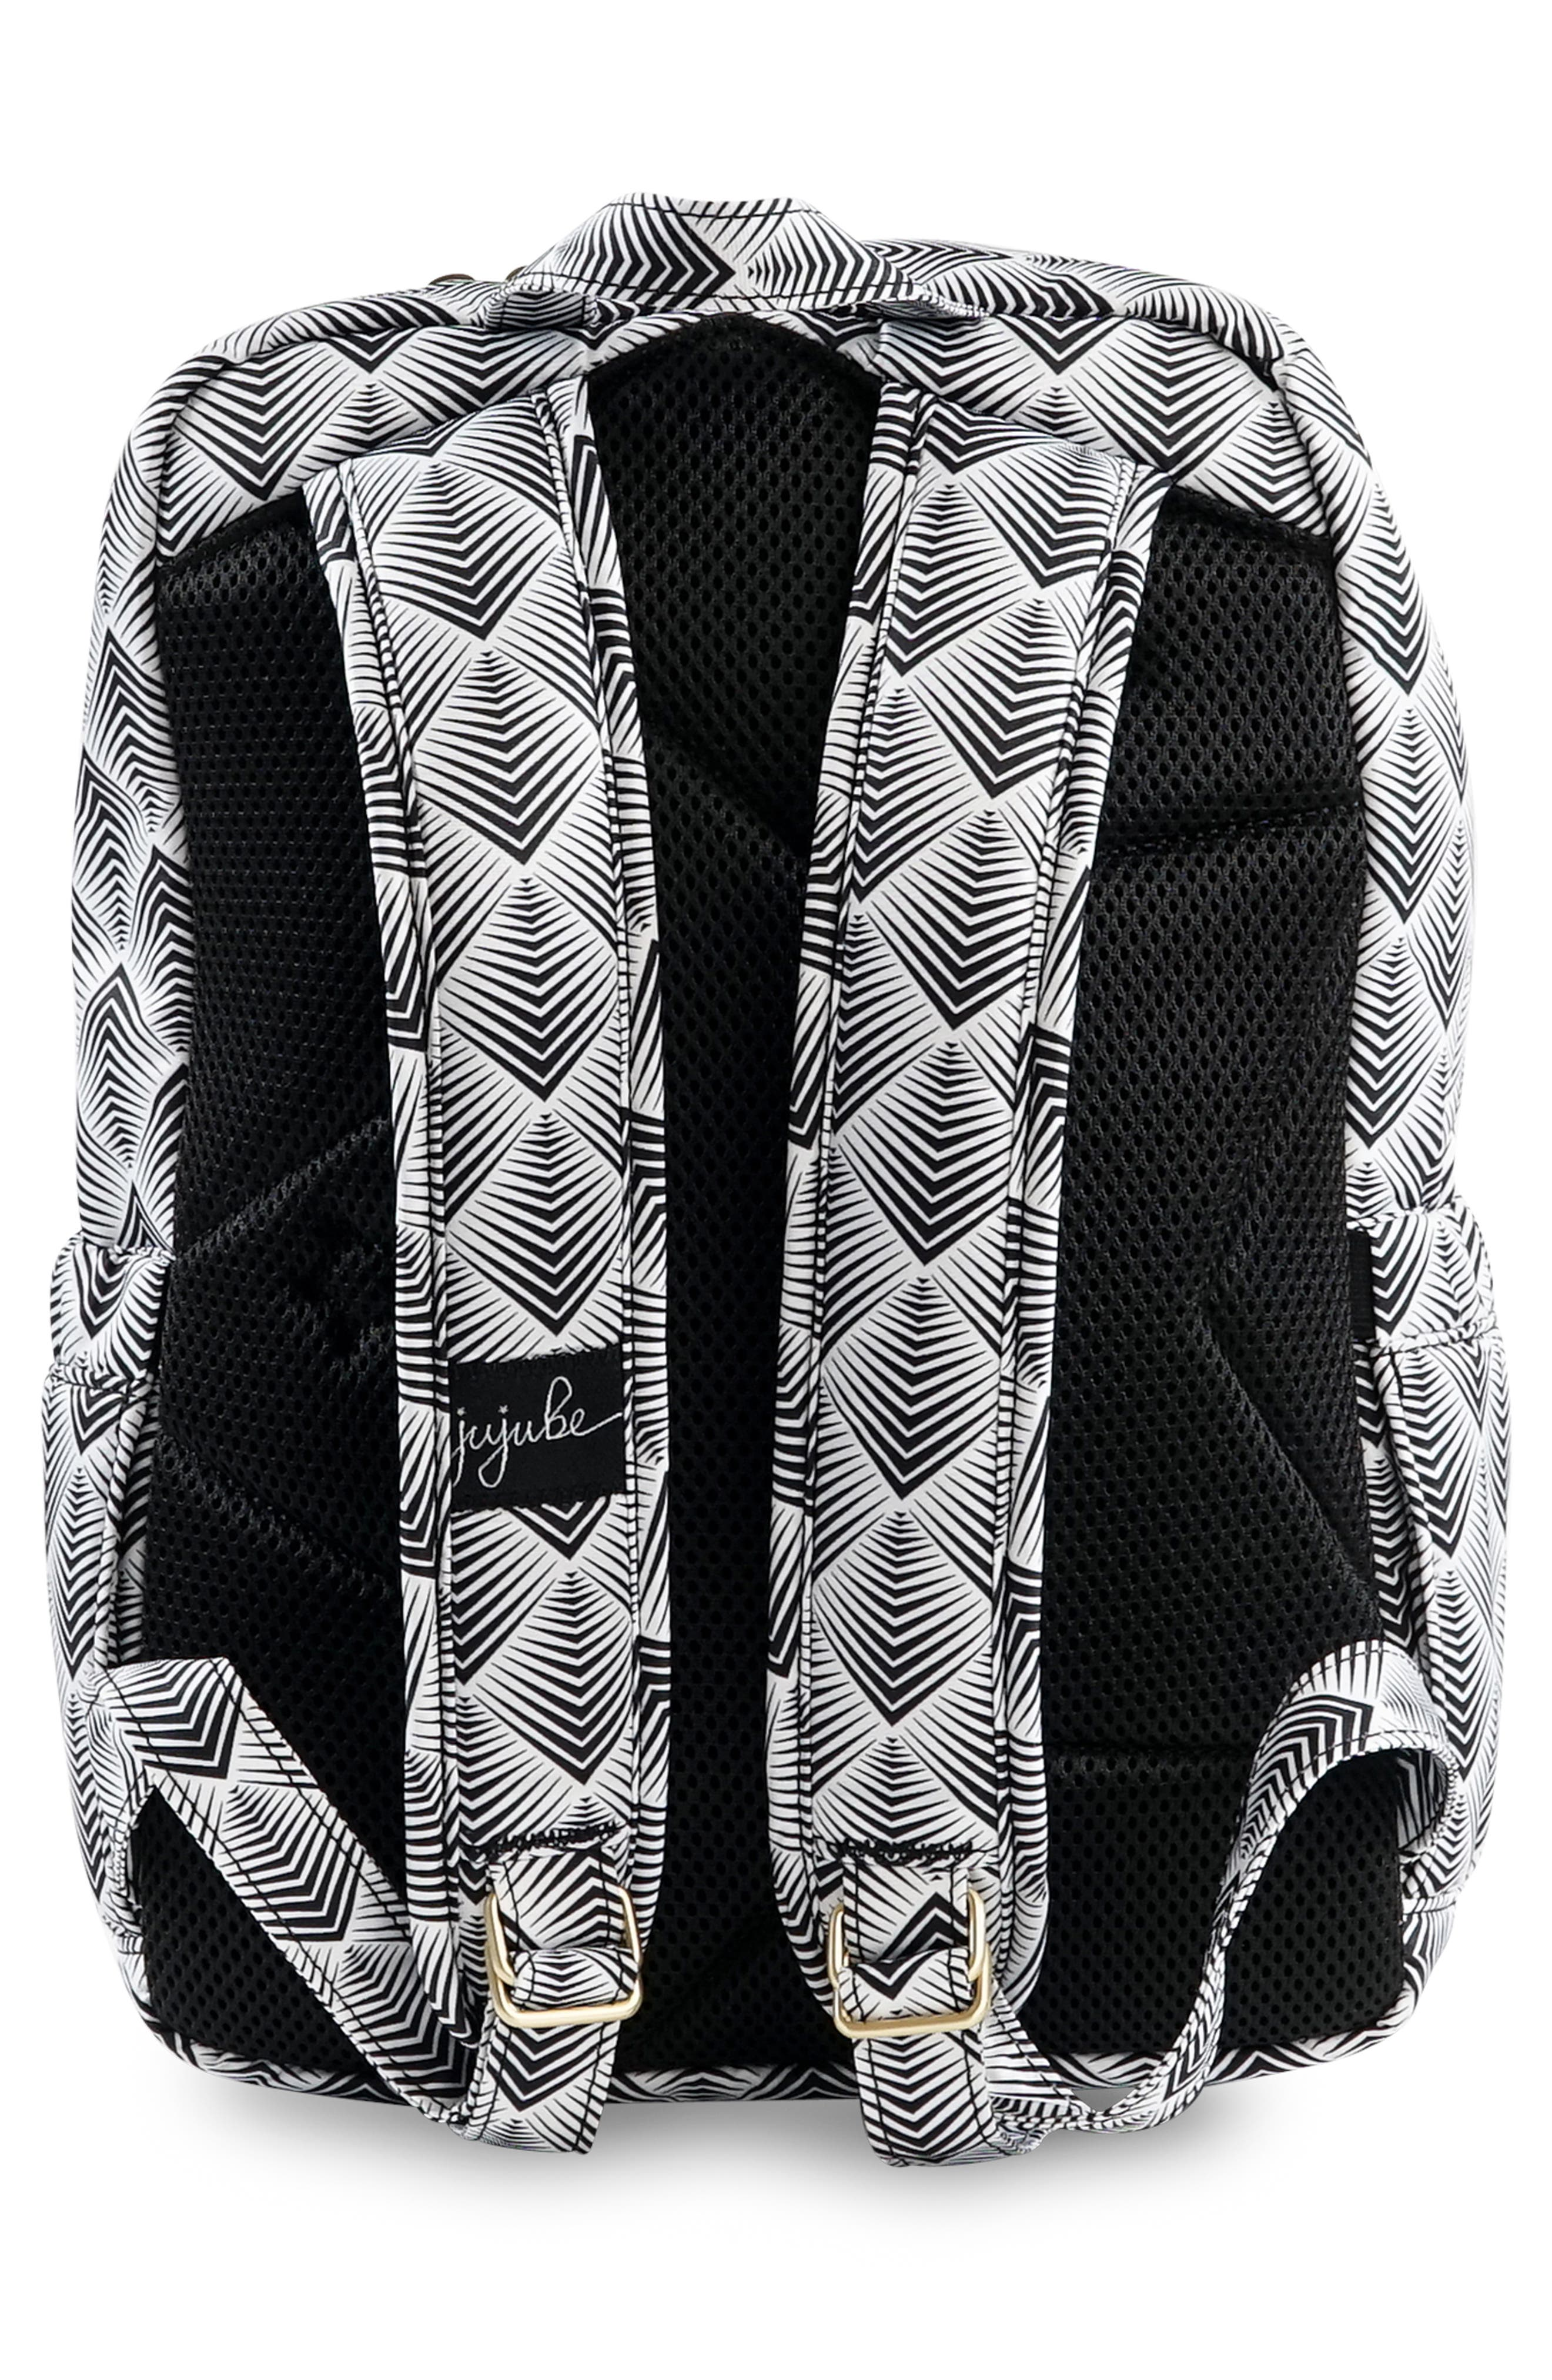 MiniBe Backpack,                             Alternate thumbnail 2, color,                             THE CLEOPATRA